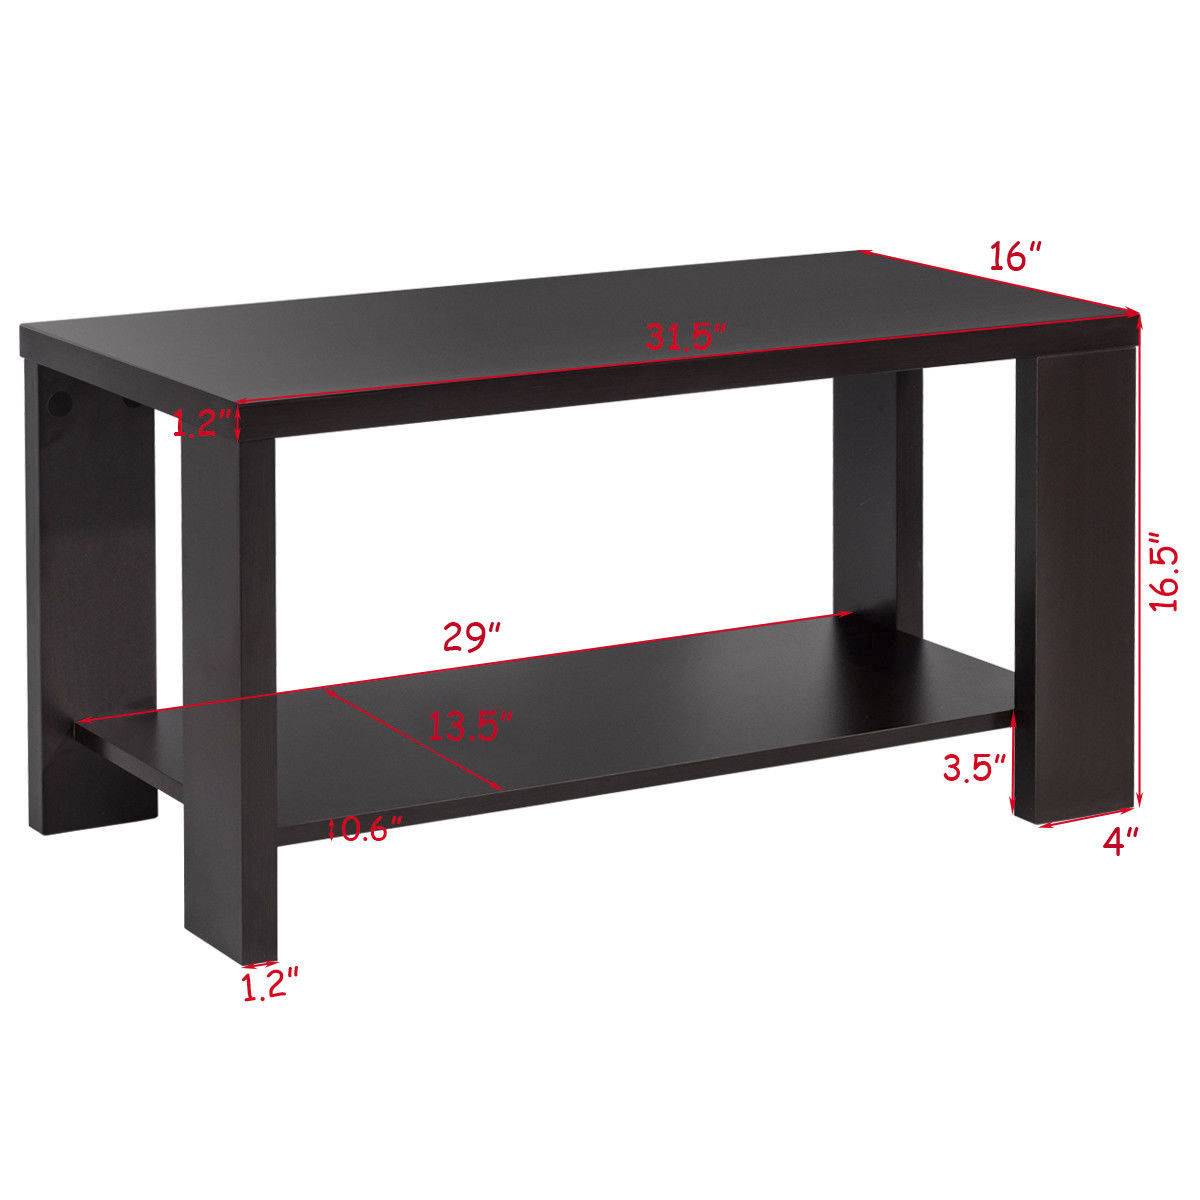 Gymax Rectangular Tail Table Coffee Living Room Furniture With Storage Shelf